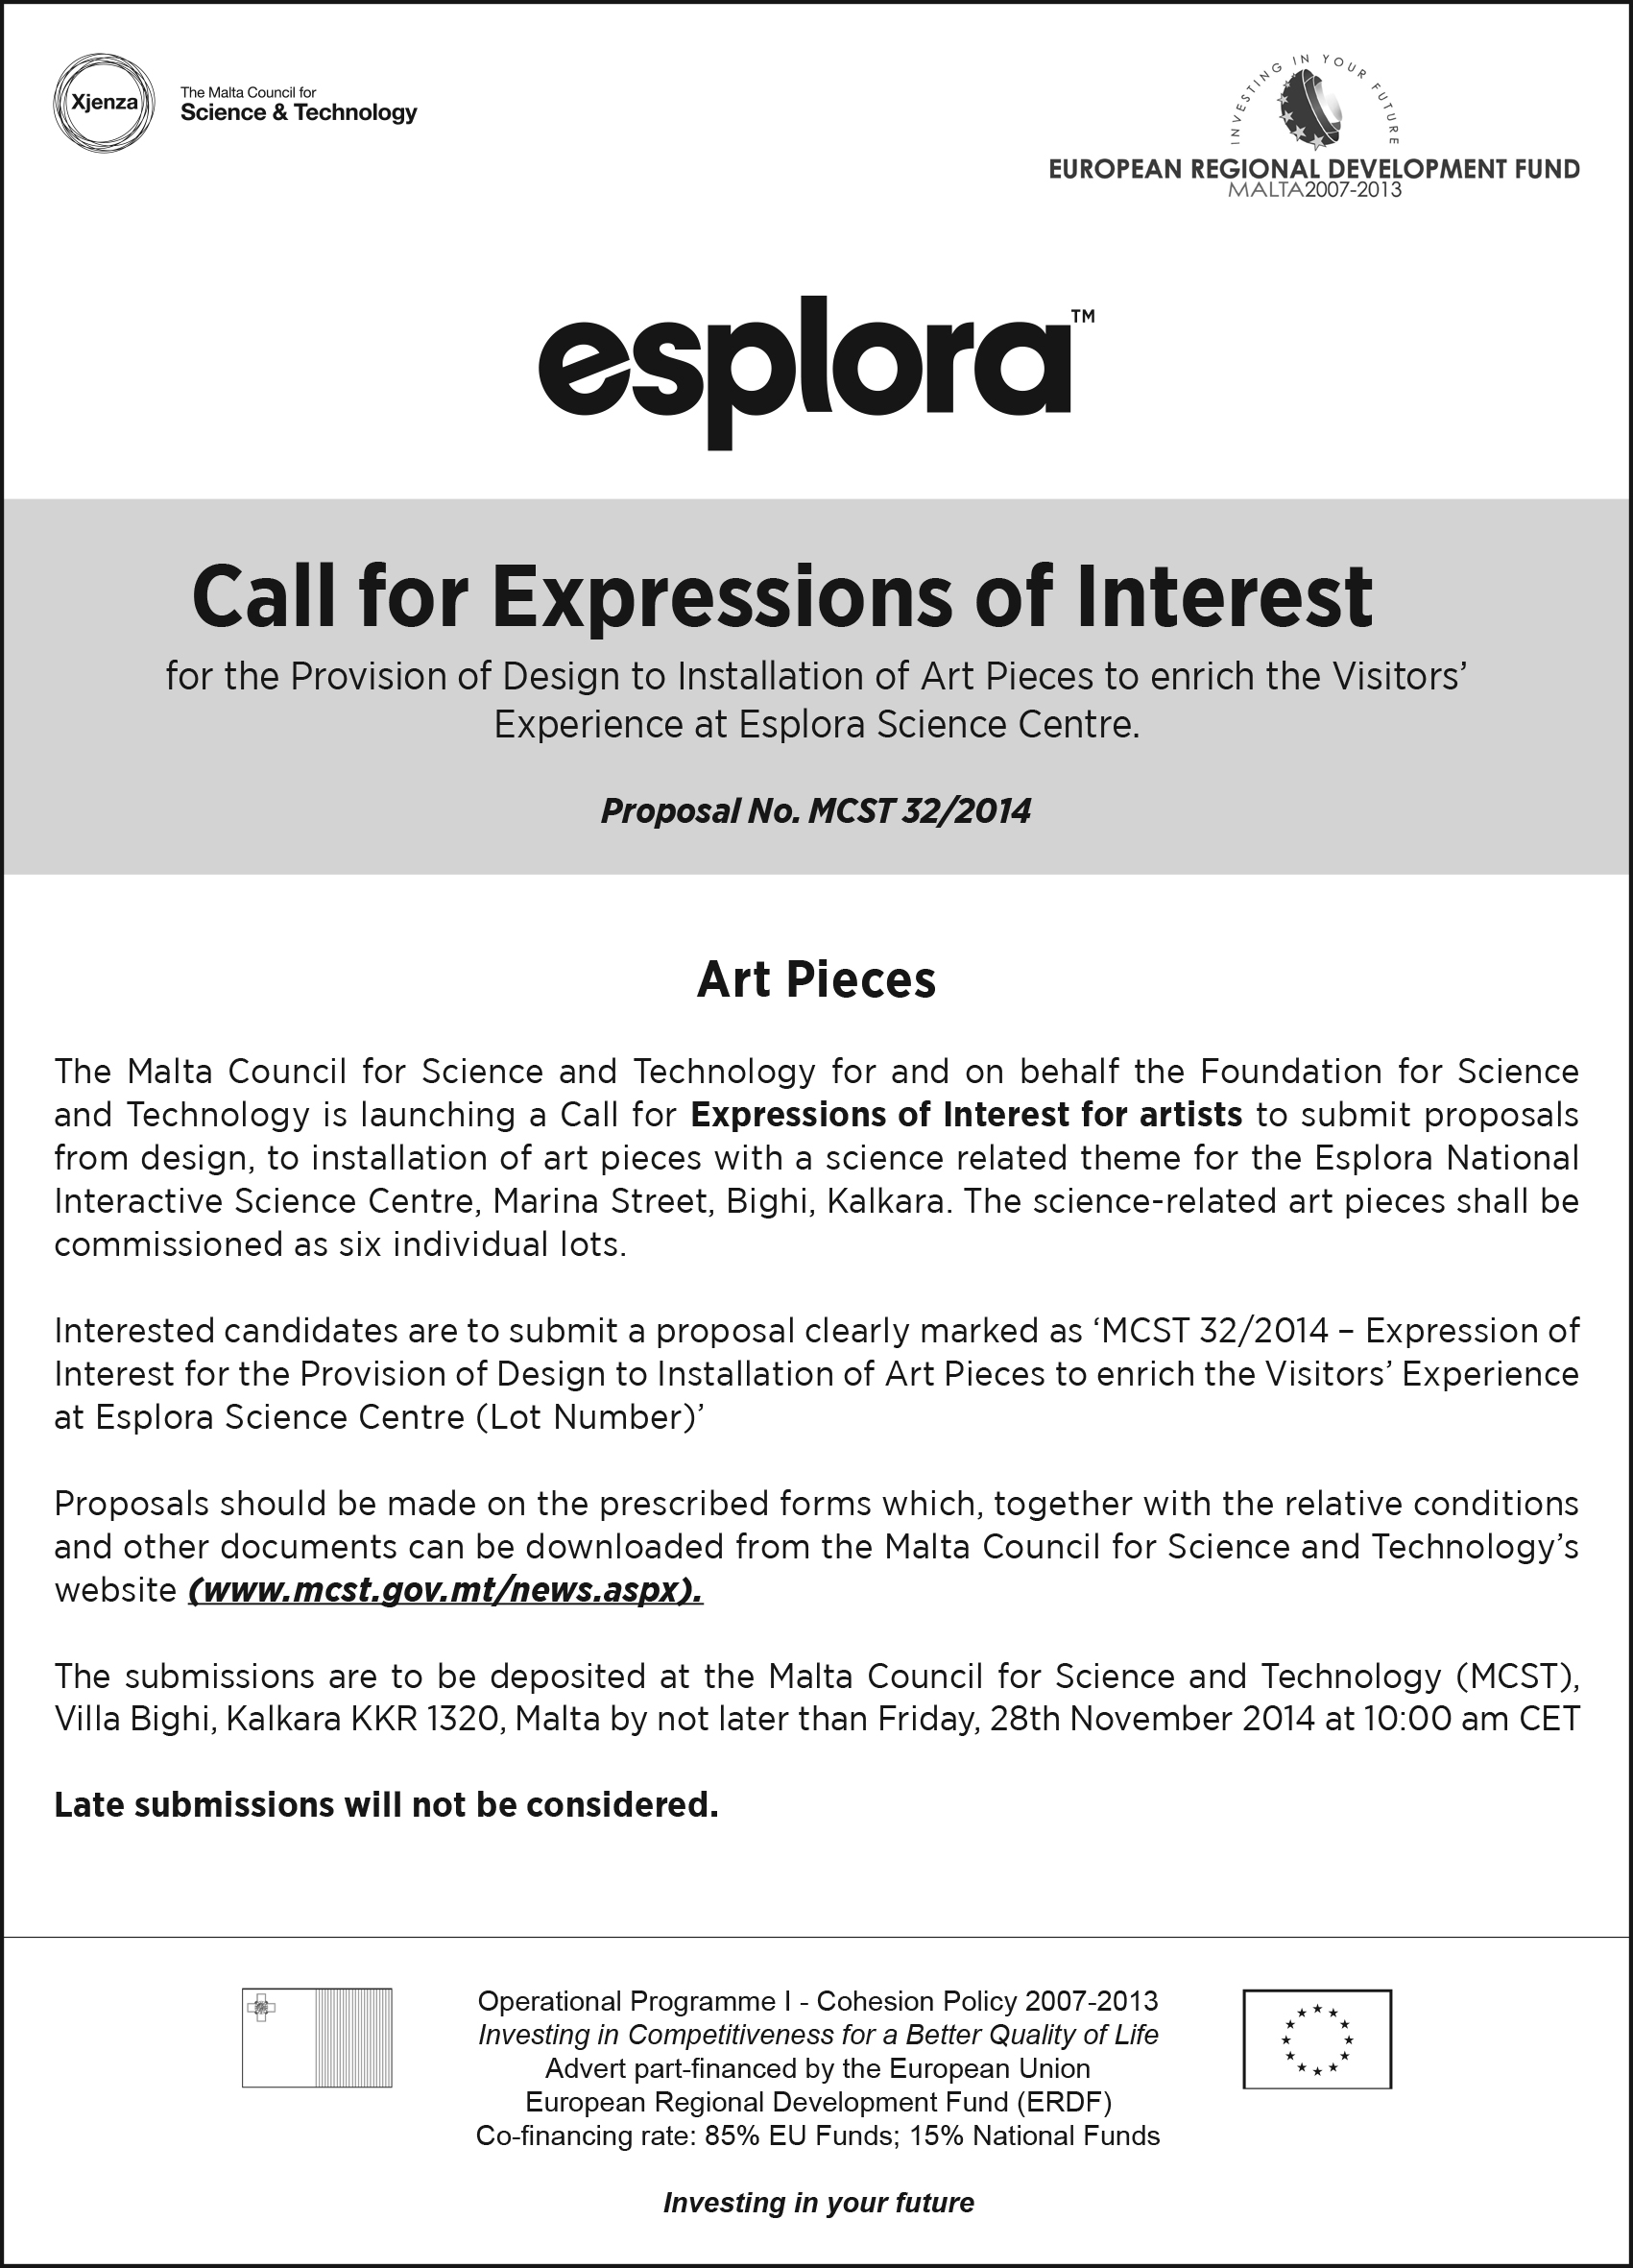 Call for expressions of interest for the provision of design to call for expressions of interest for the provision of design to installation of art pieces to enrich the visitors experience at esplora science centre thecheapjerseys Gallery